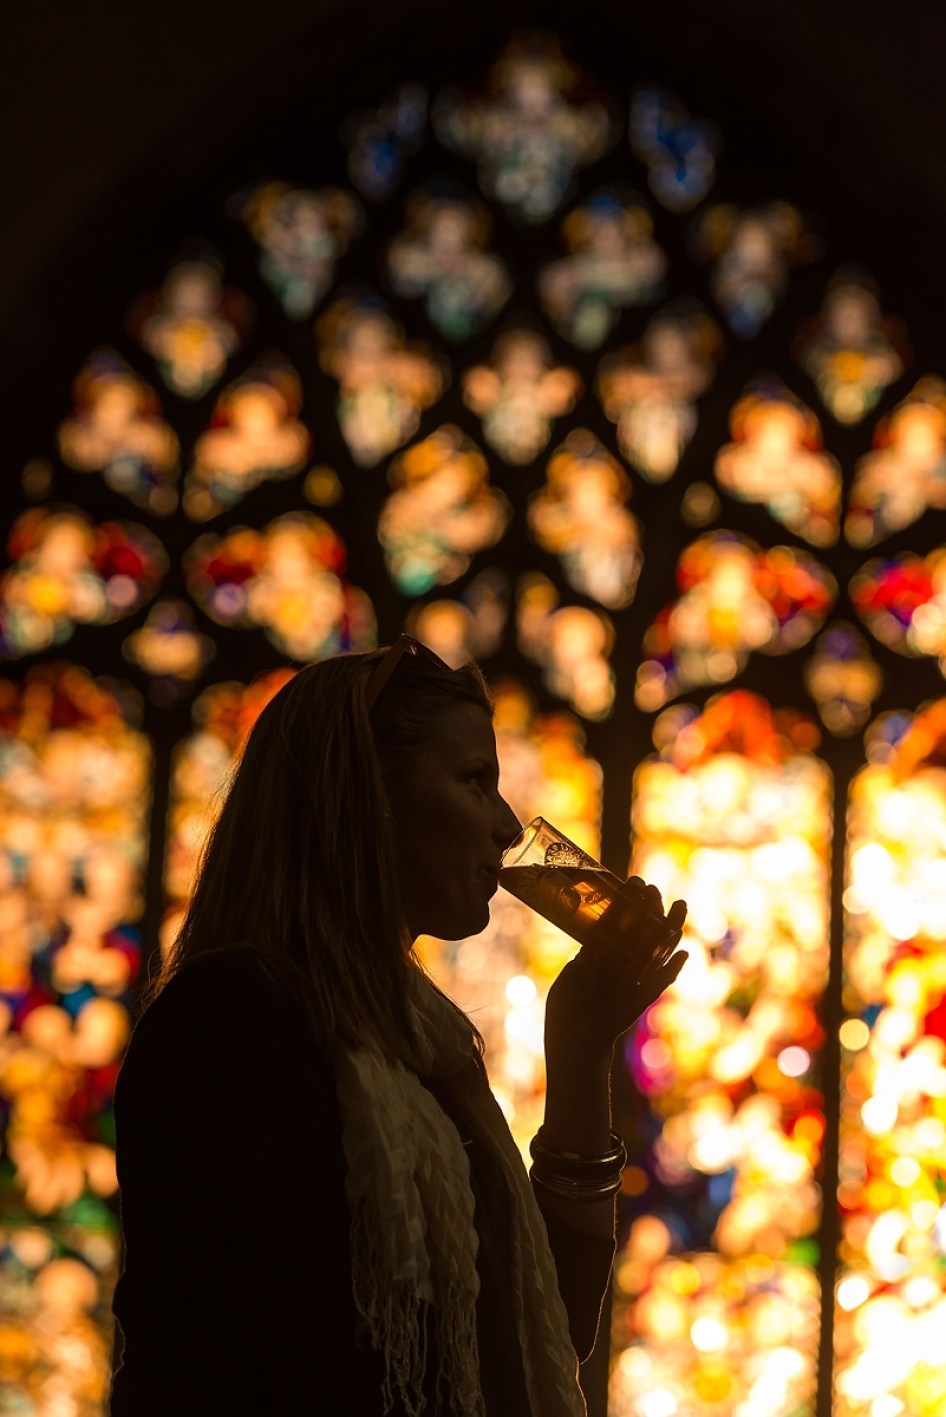 A girl drinks a glass of ale in front of a large stained glass window